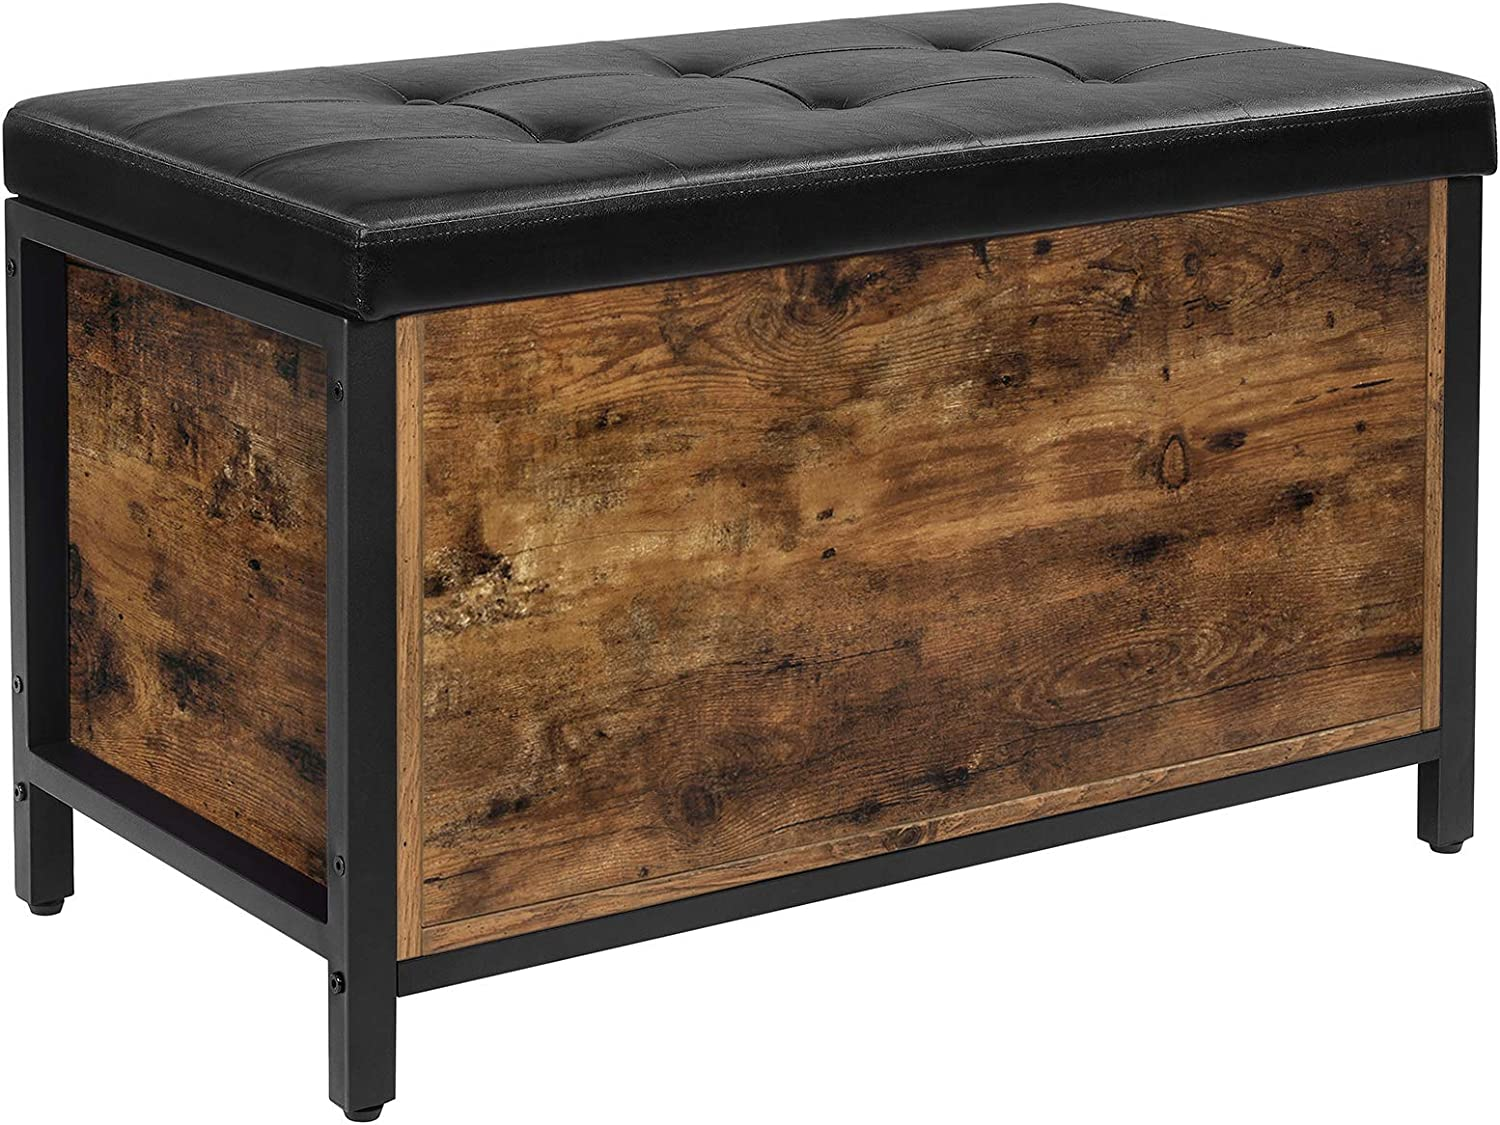 70% OFF Outlet VASAGLE Entryway Storage Bench Flip Portland Mall and Top Tru Ottoman